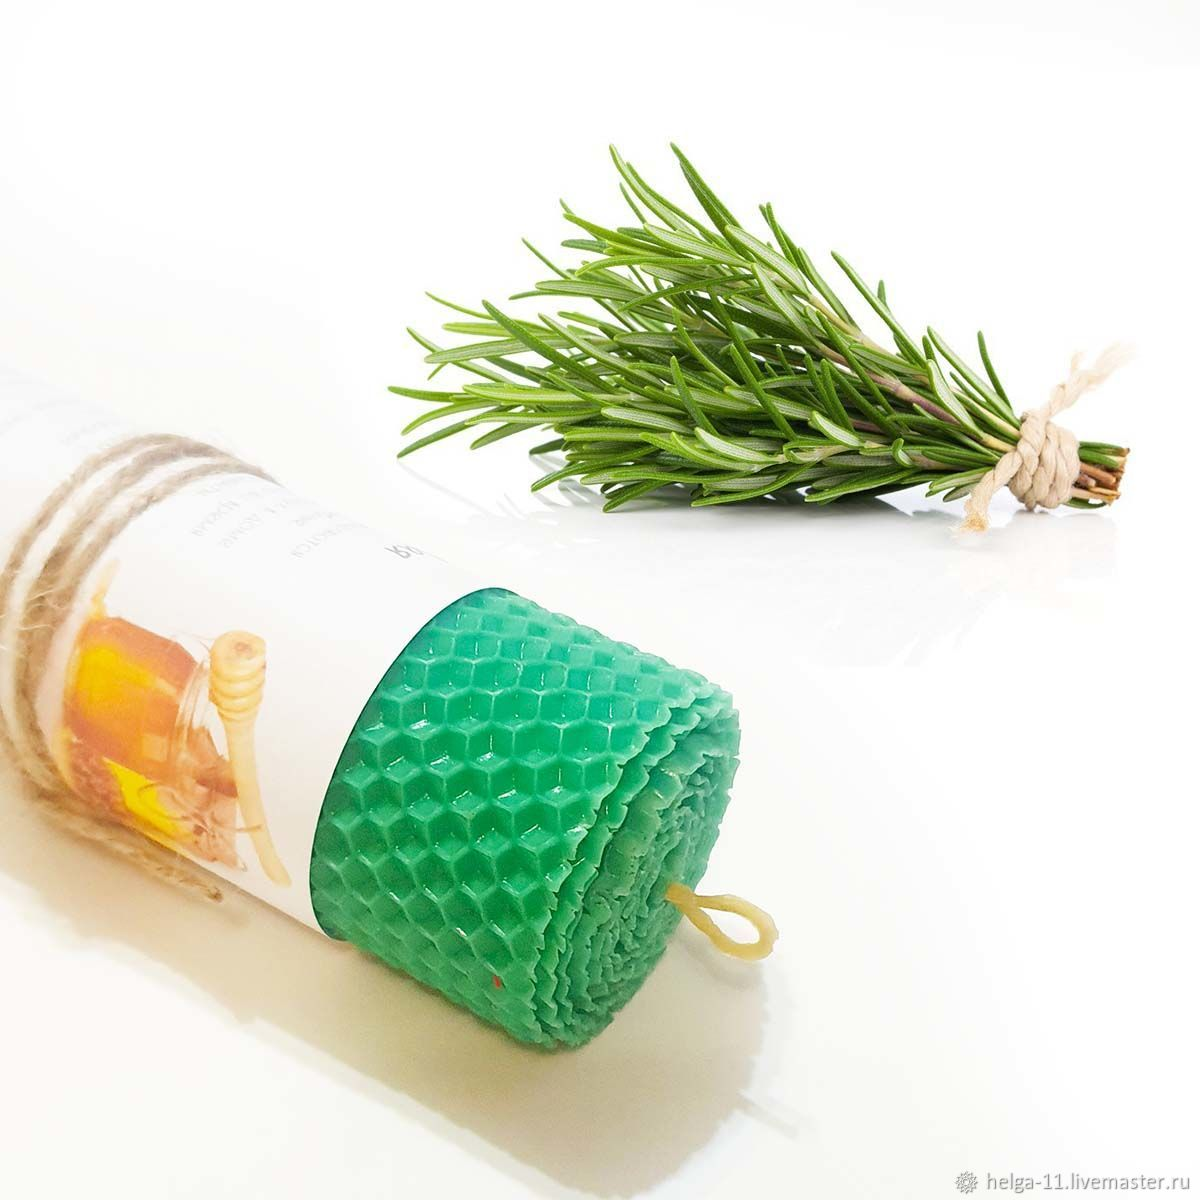 Honey candle-Green with rosemary 13h4,7,  cm, Candles, St. Petersburg,  Фото №1